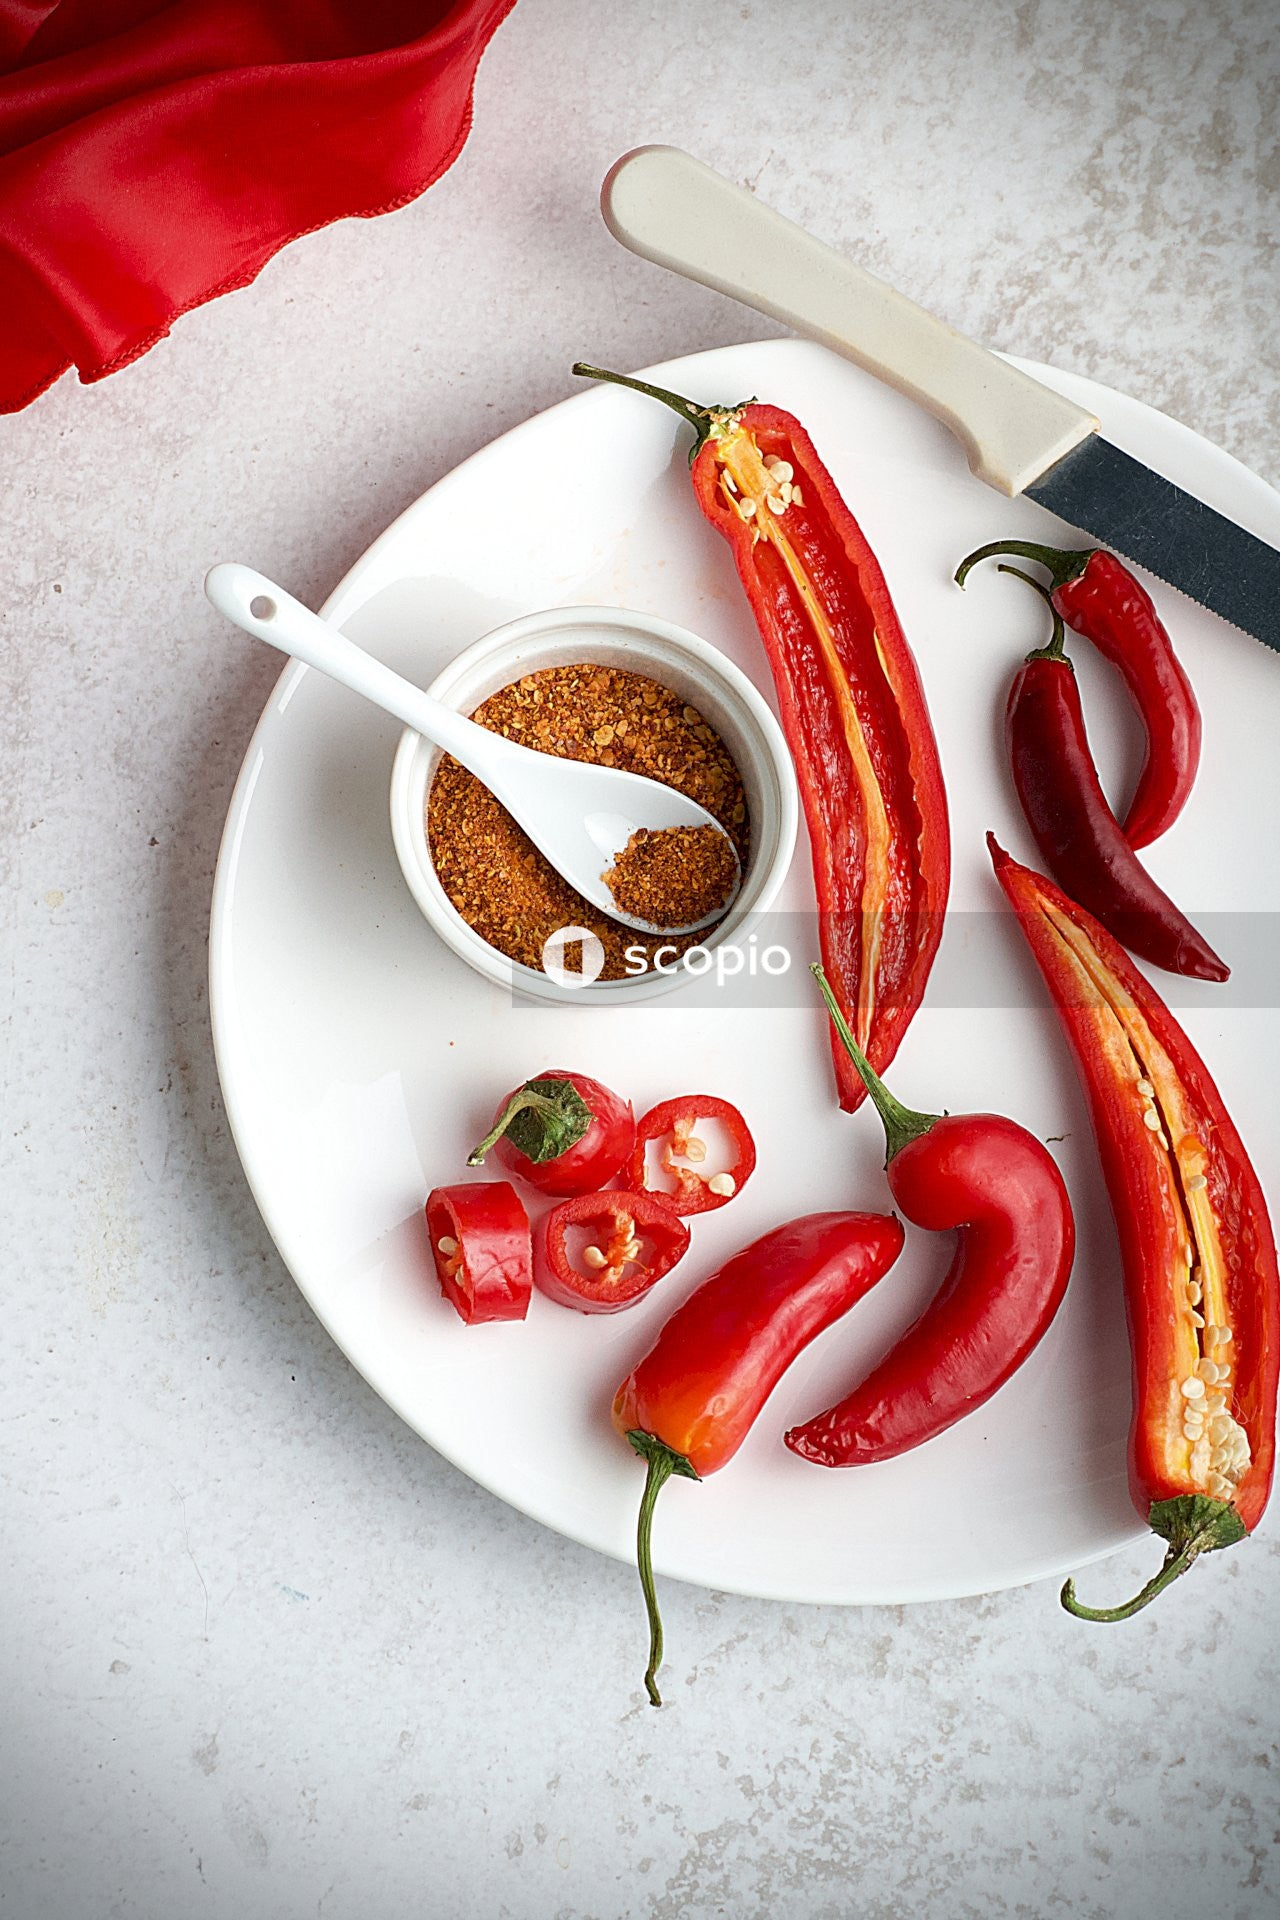 Red chili pepper on white ceramic plate